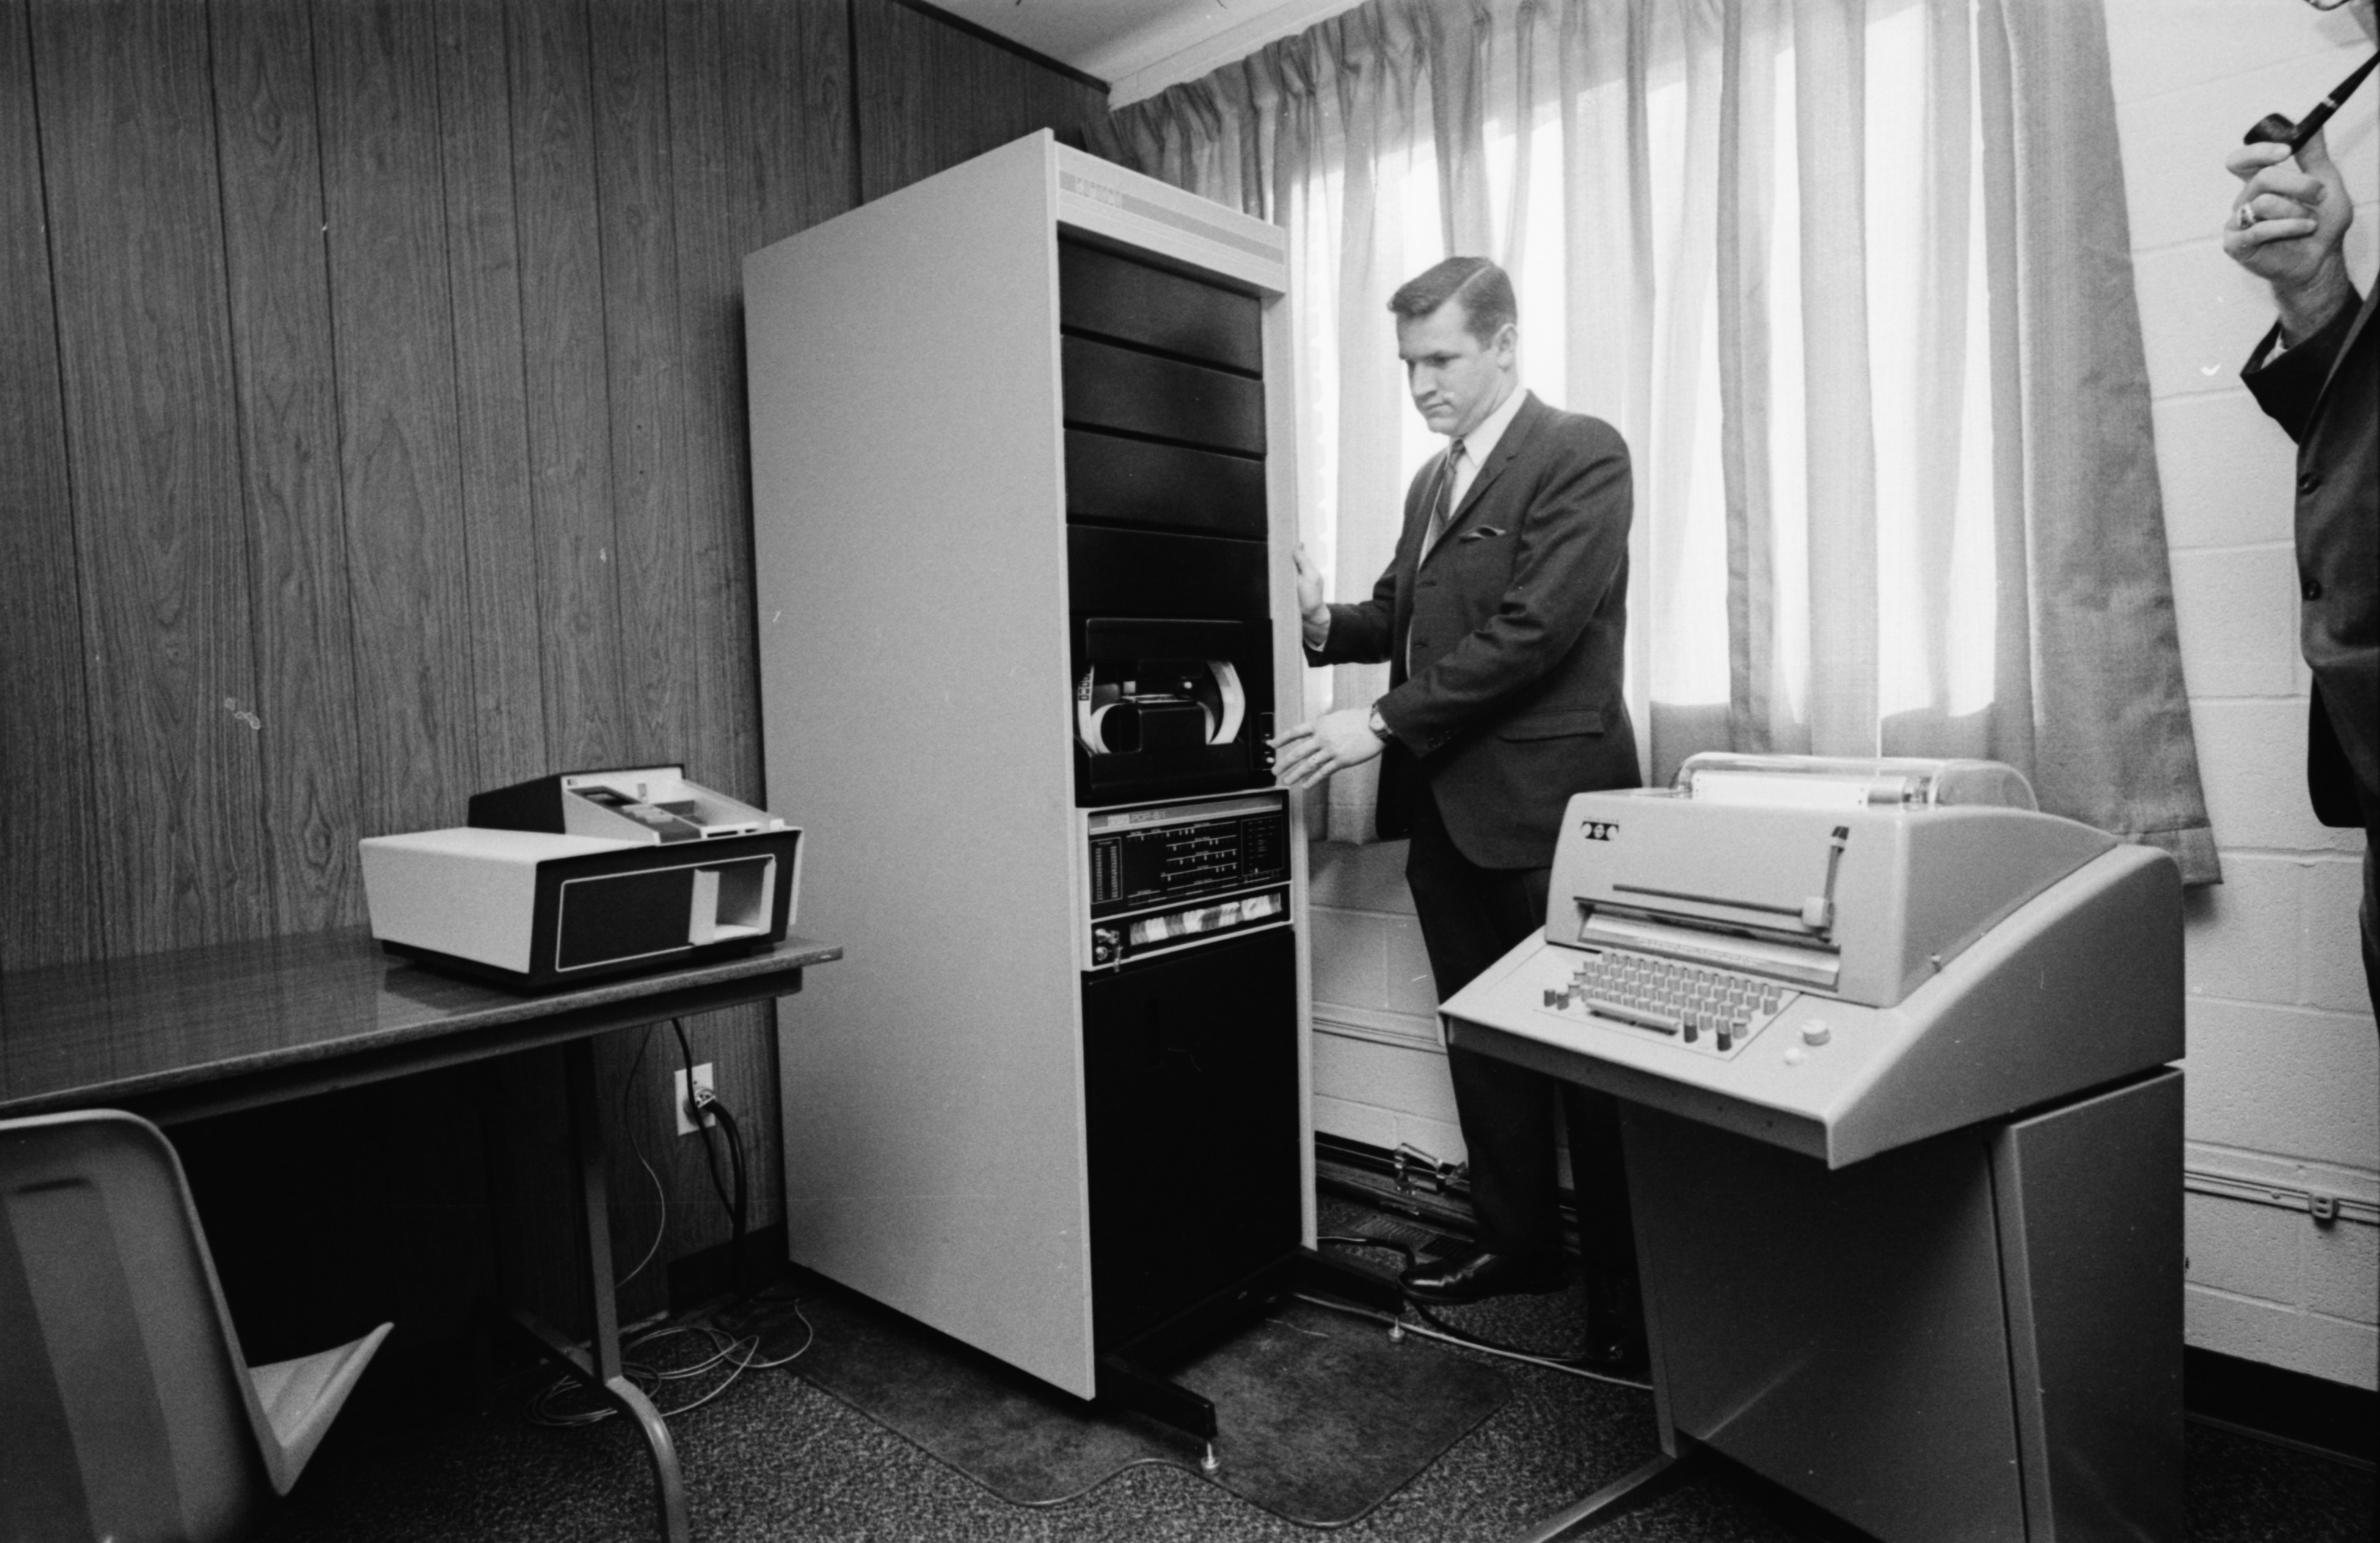 William C. Menke Poses With Computer, March 1969 image